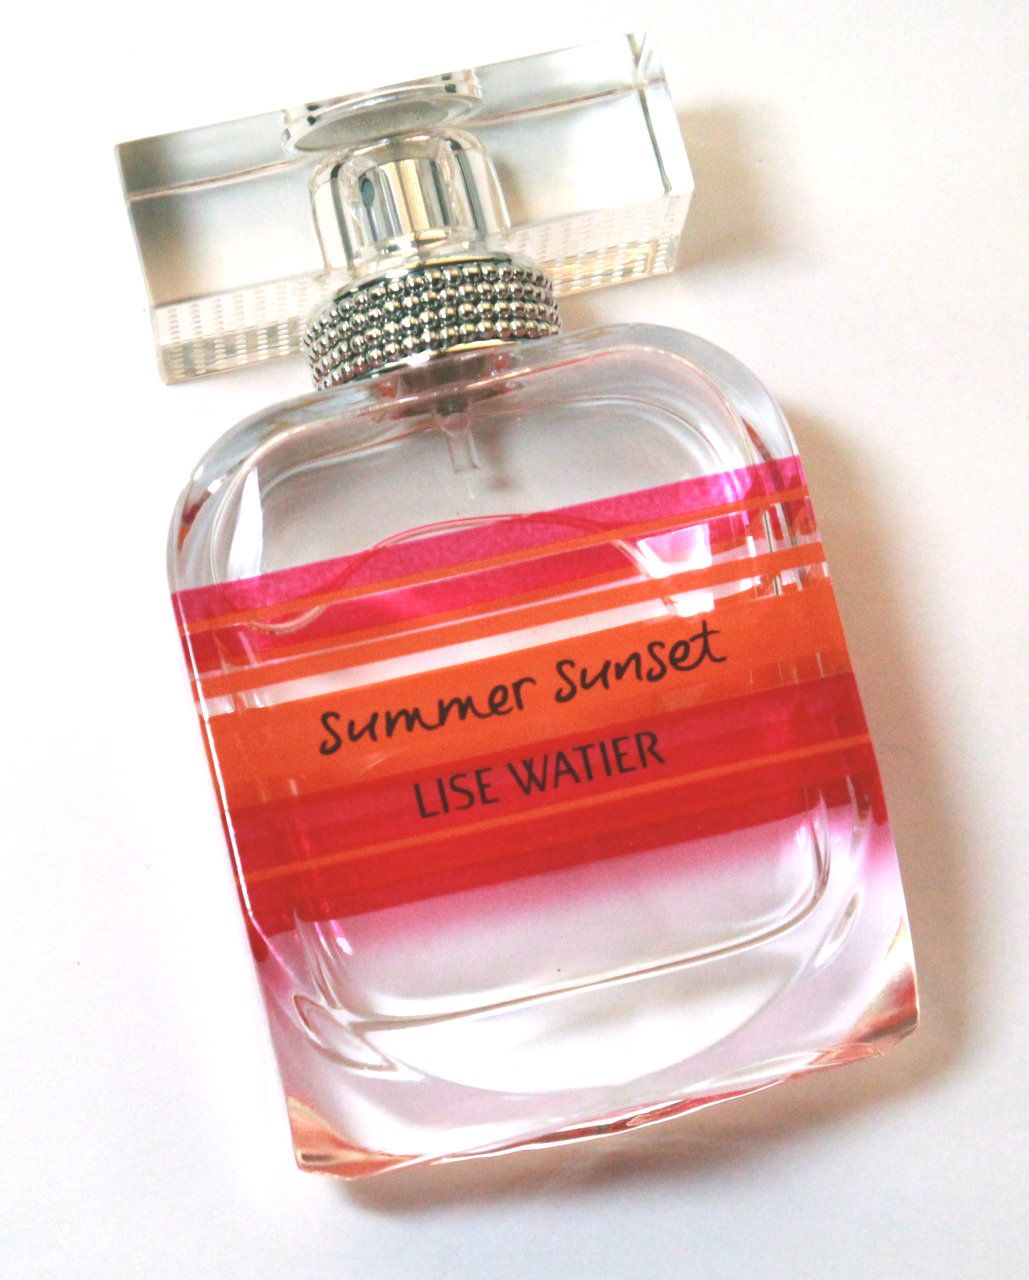 Beauty Reflections: Lise Watier Summer Sunset Eau de Toilette-Sunshine In A Bottle